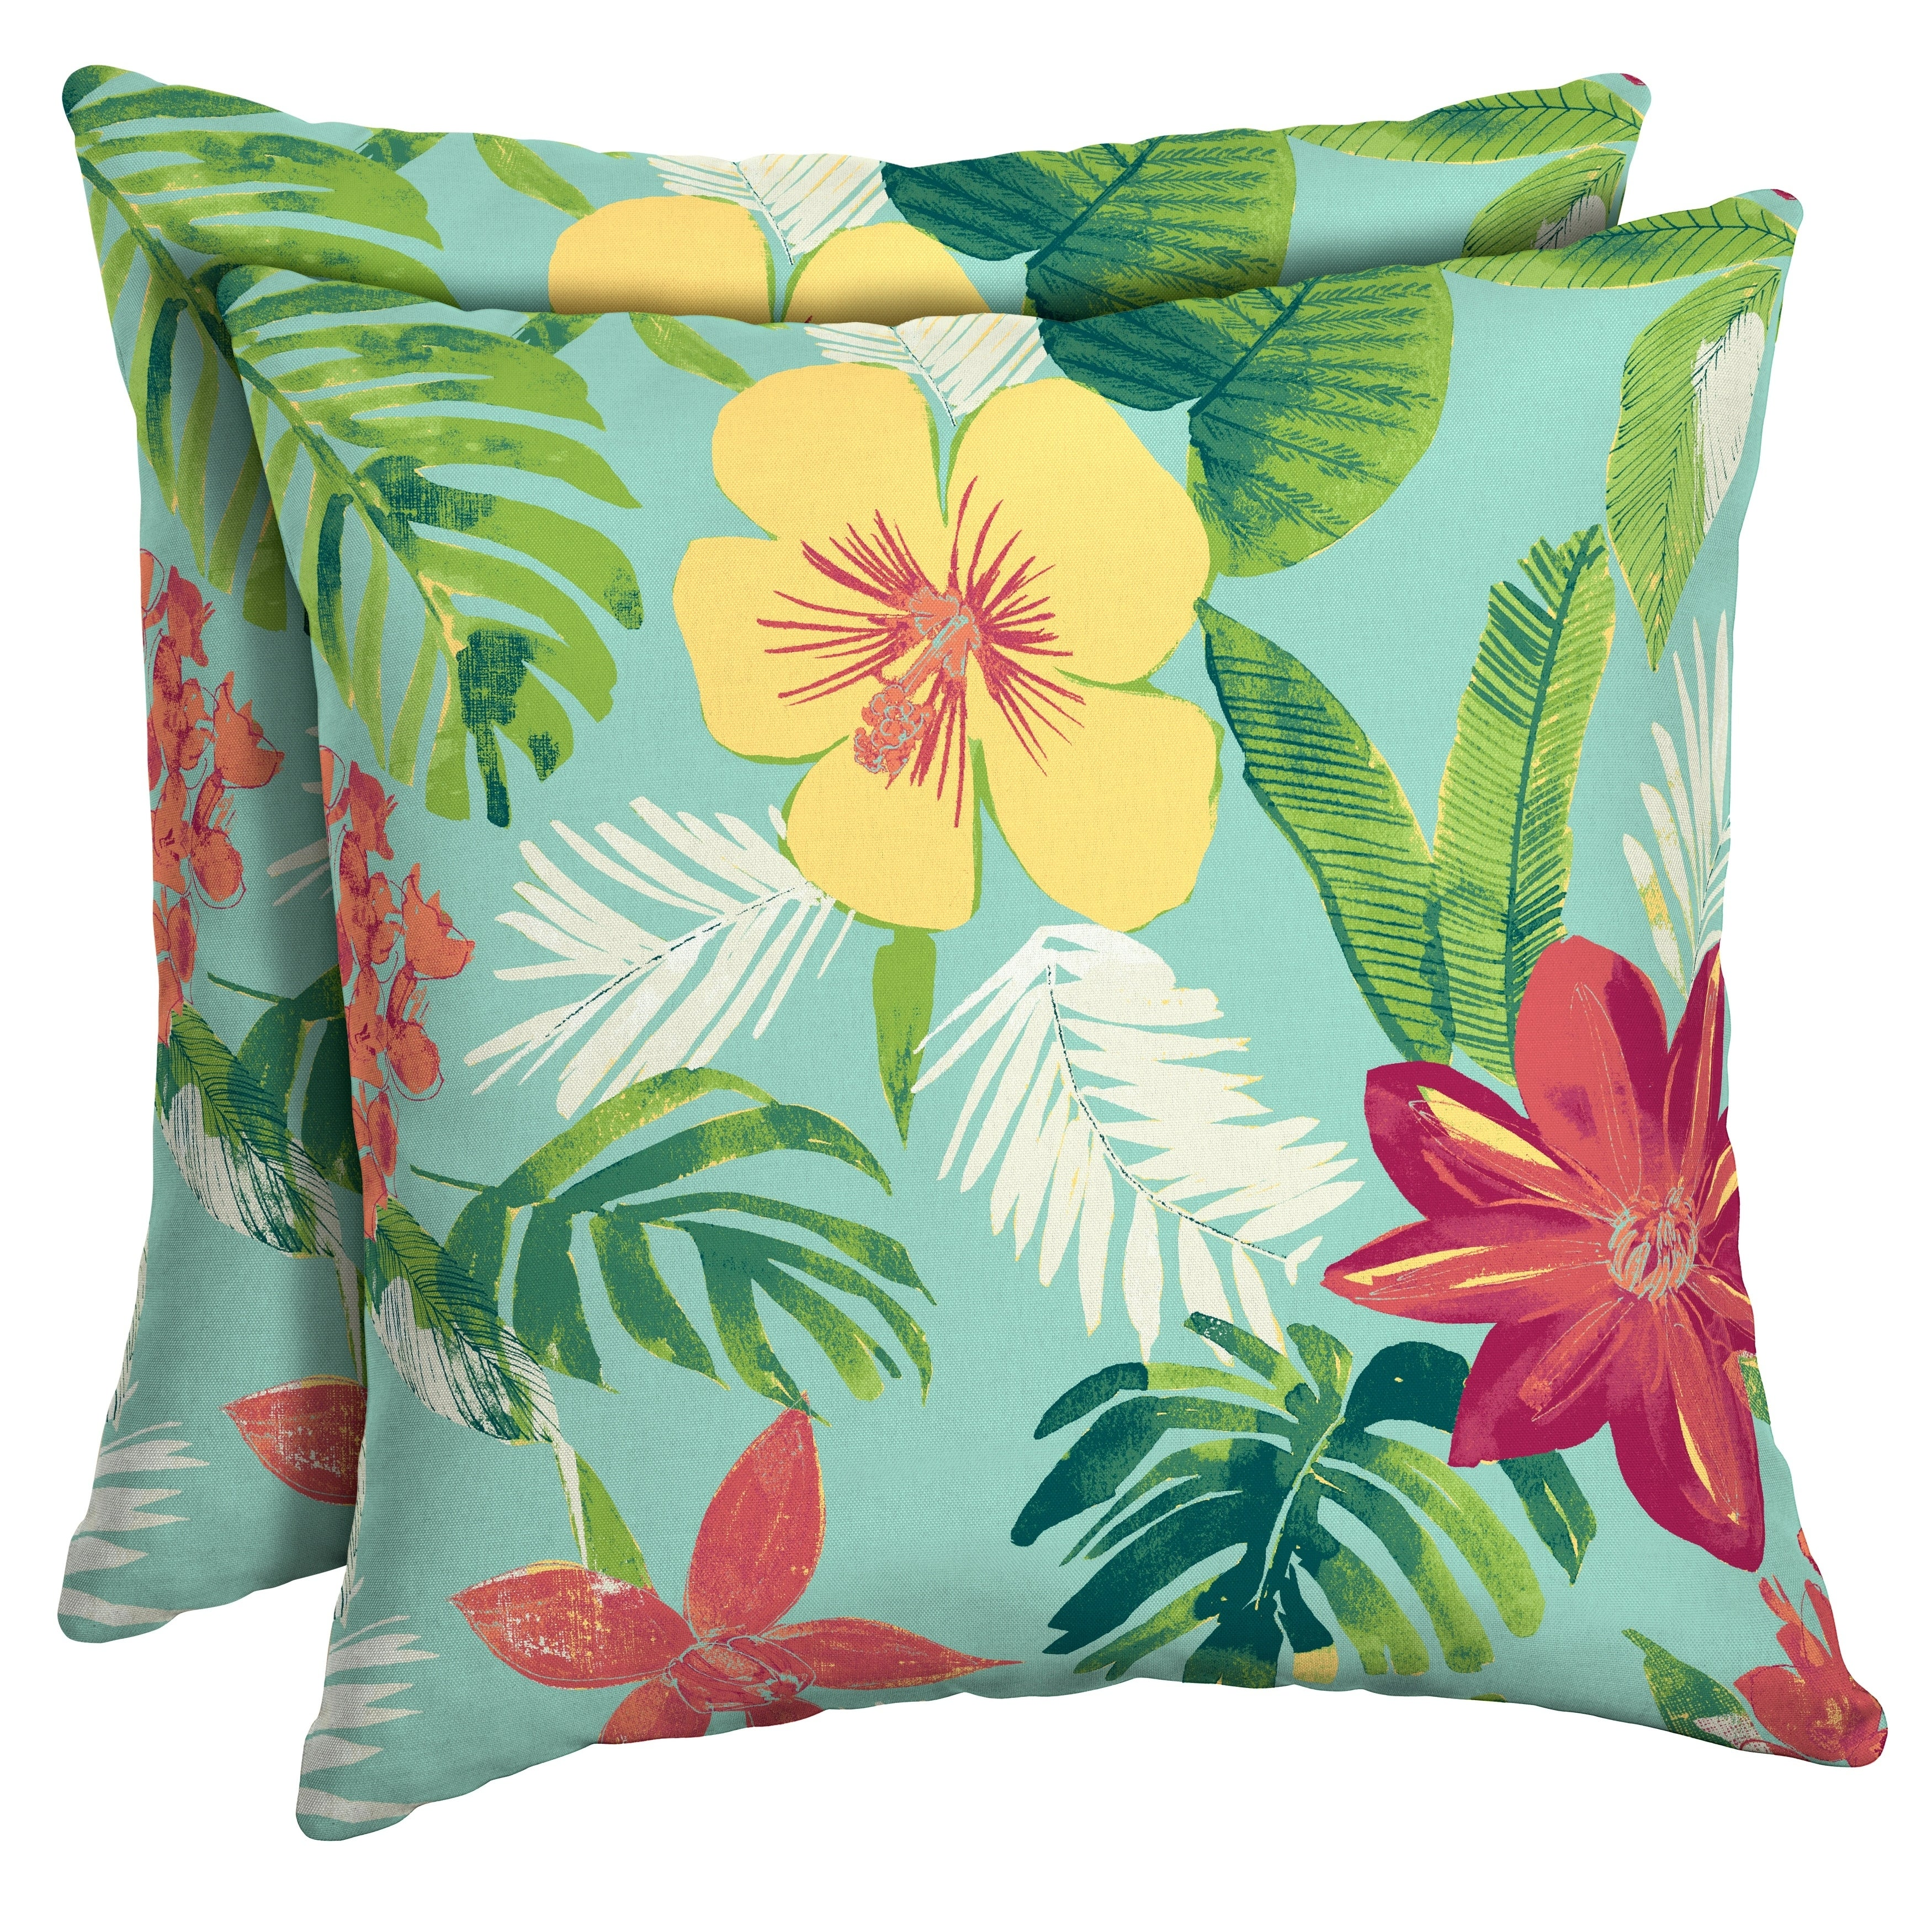 Arden Selections Elea Tropical Outdoor Square Pillow 2 Pack